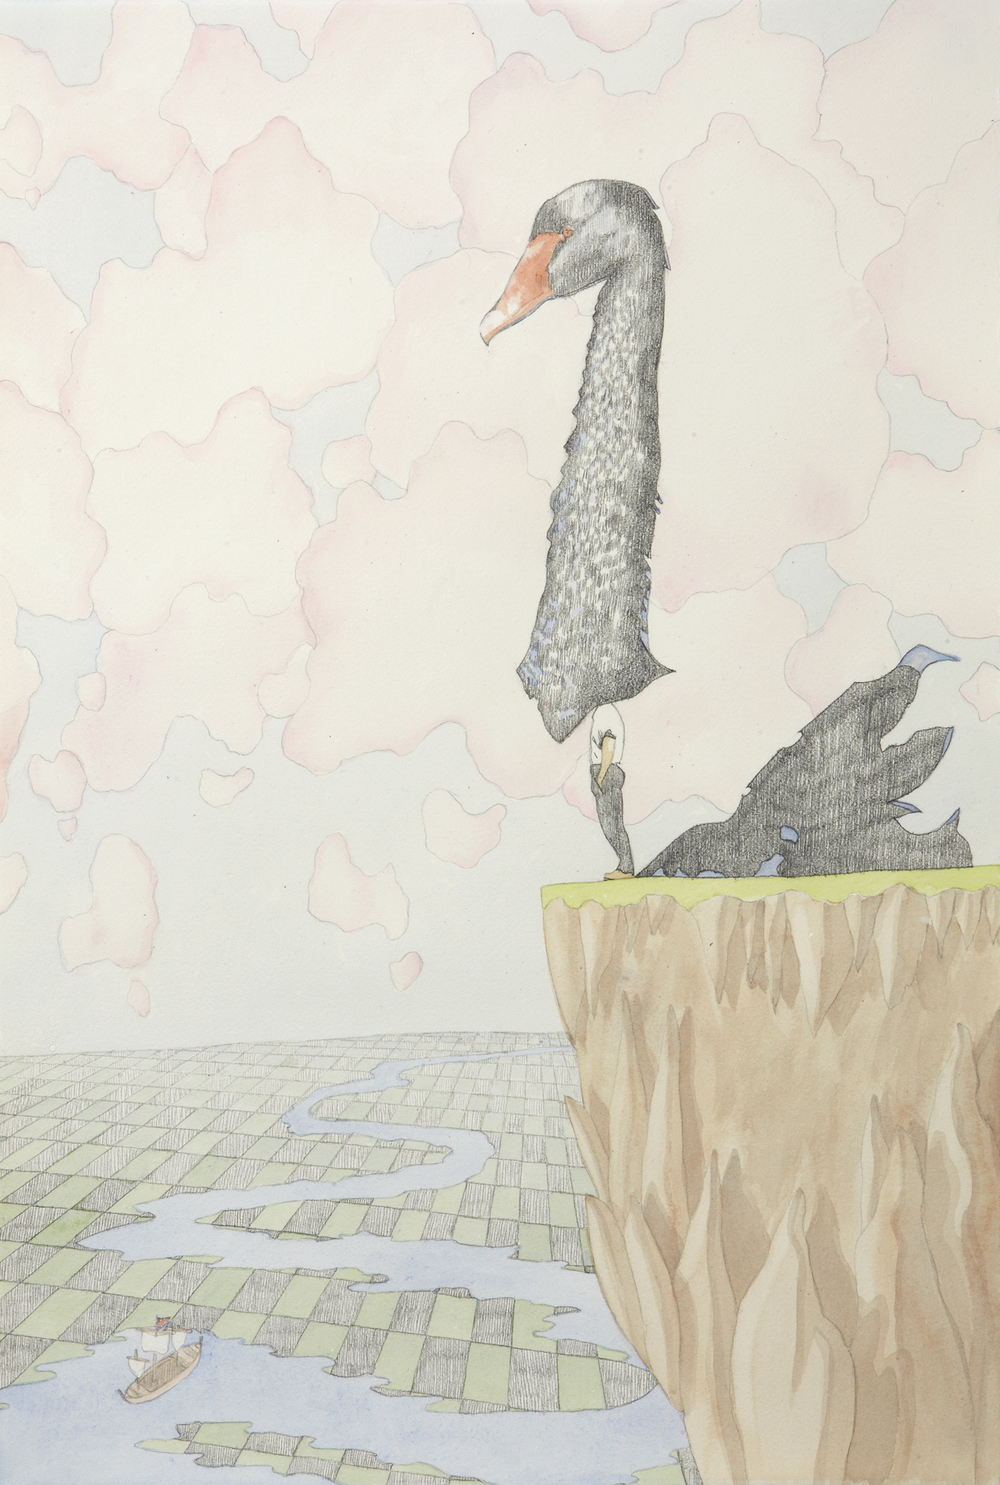 Swan Song #4, 2012, Watercolour and pencil on paper, 38.5 x 56.5 cm, Photo: Sam Scoufos